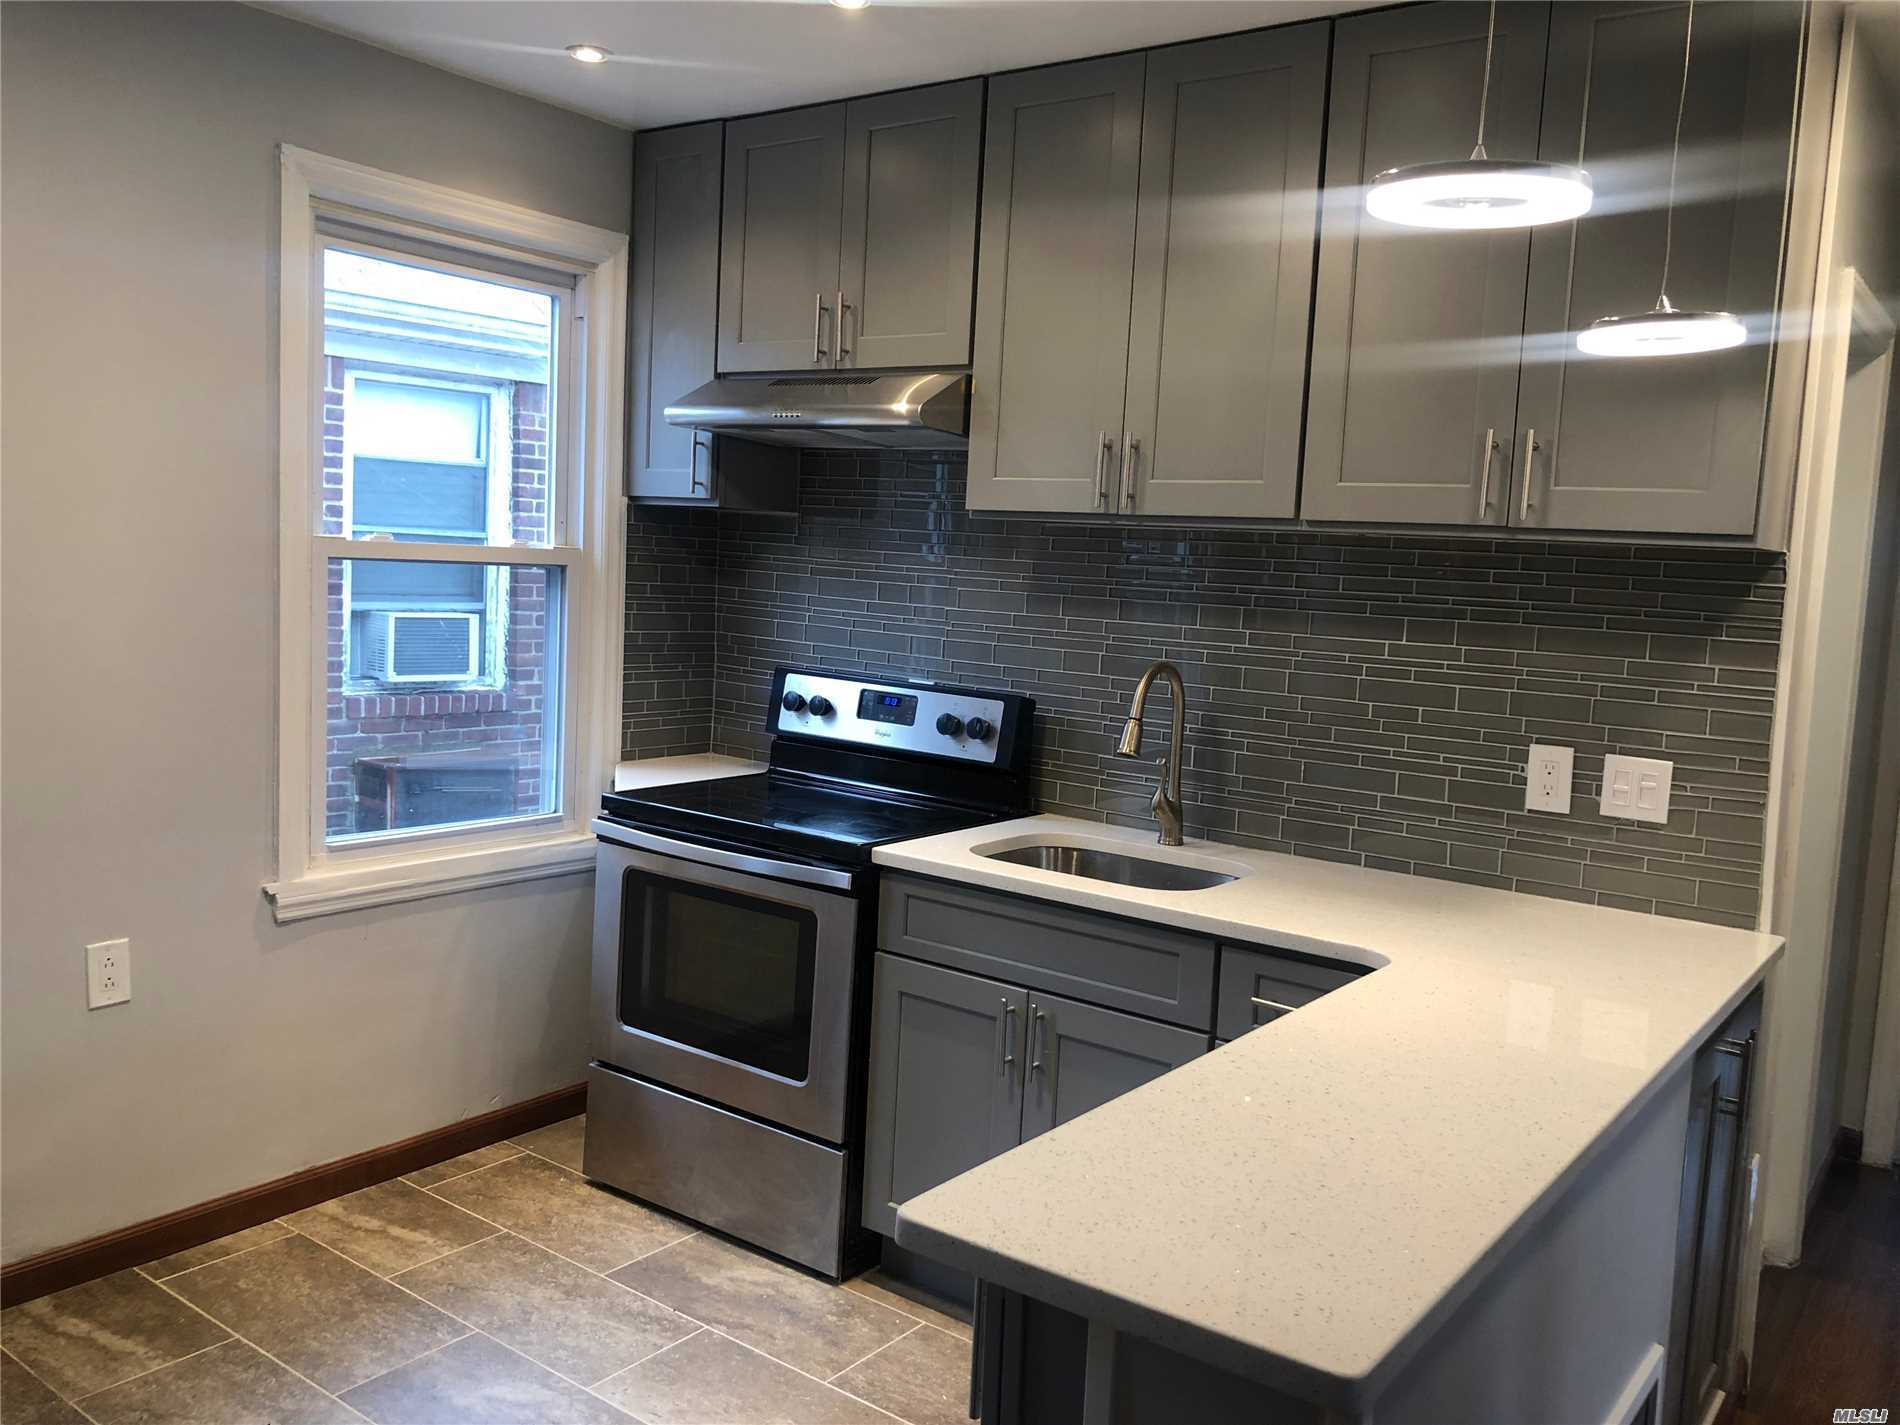 Welcome to this Beautifully & completely renovated 2 Bedroom apartment in in the exclusive Crescent section of Rego Park. Modern kitchen w/ new cabinets and stunning granite countertop along with stainless steel appliances. New wall to wall tiled bathroom. Plenty of storage/closets. New flooring throughout. Huge Balcony included. Close to many bus lines on Woodhaven Blvd and 15-20 minute walk to 63rd Dr & 67th Ave subway station. Steps to P.S. 174 & playground! plenty of off street parking.